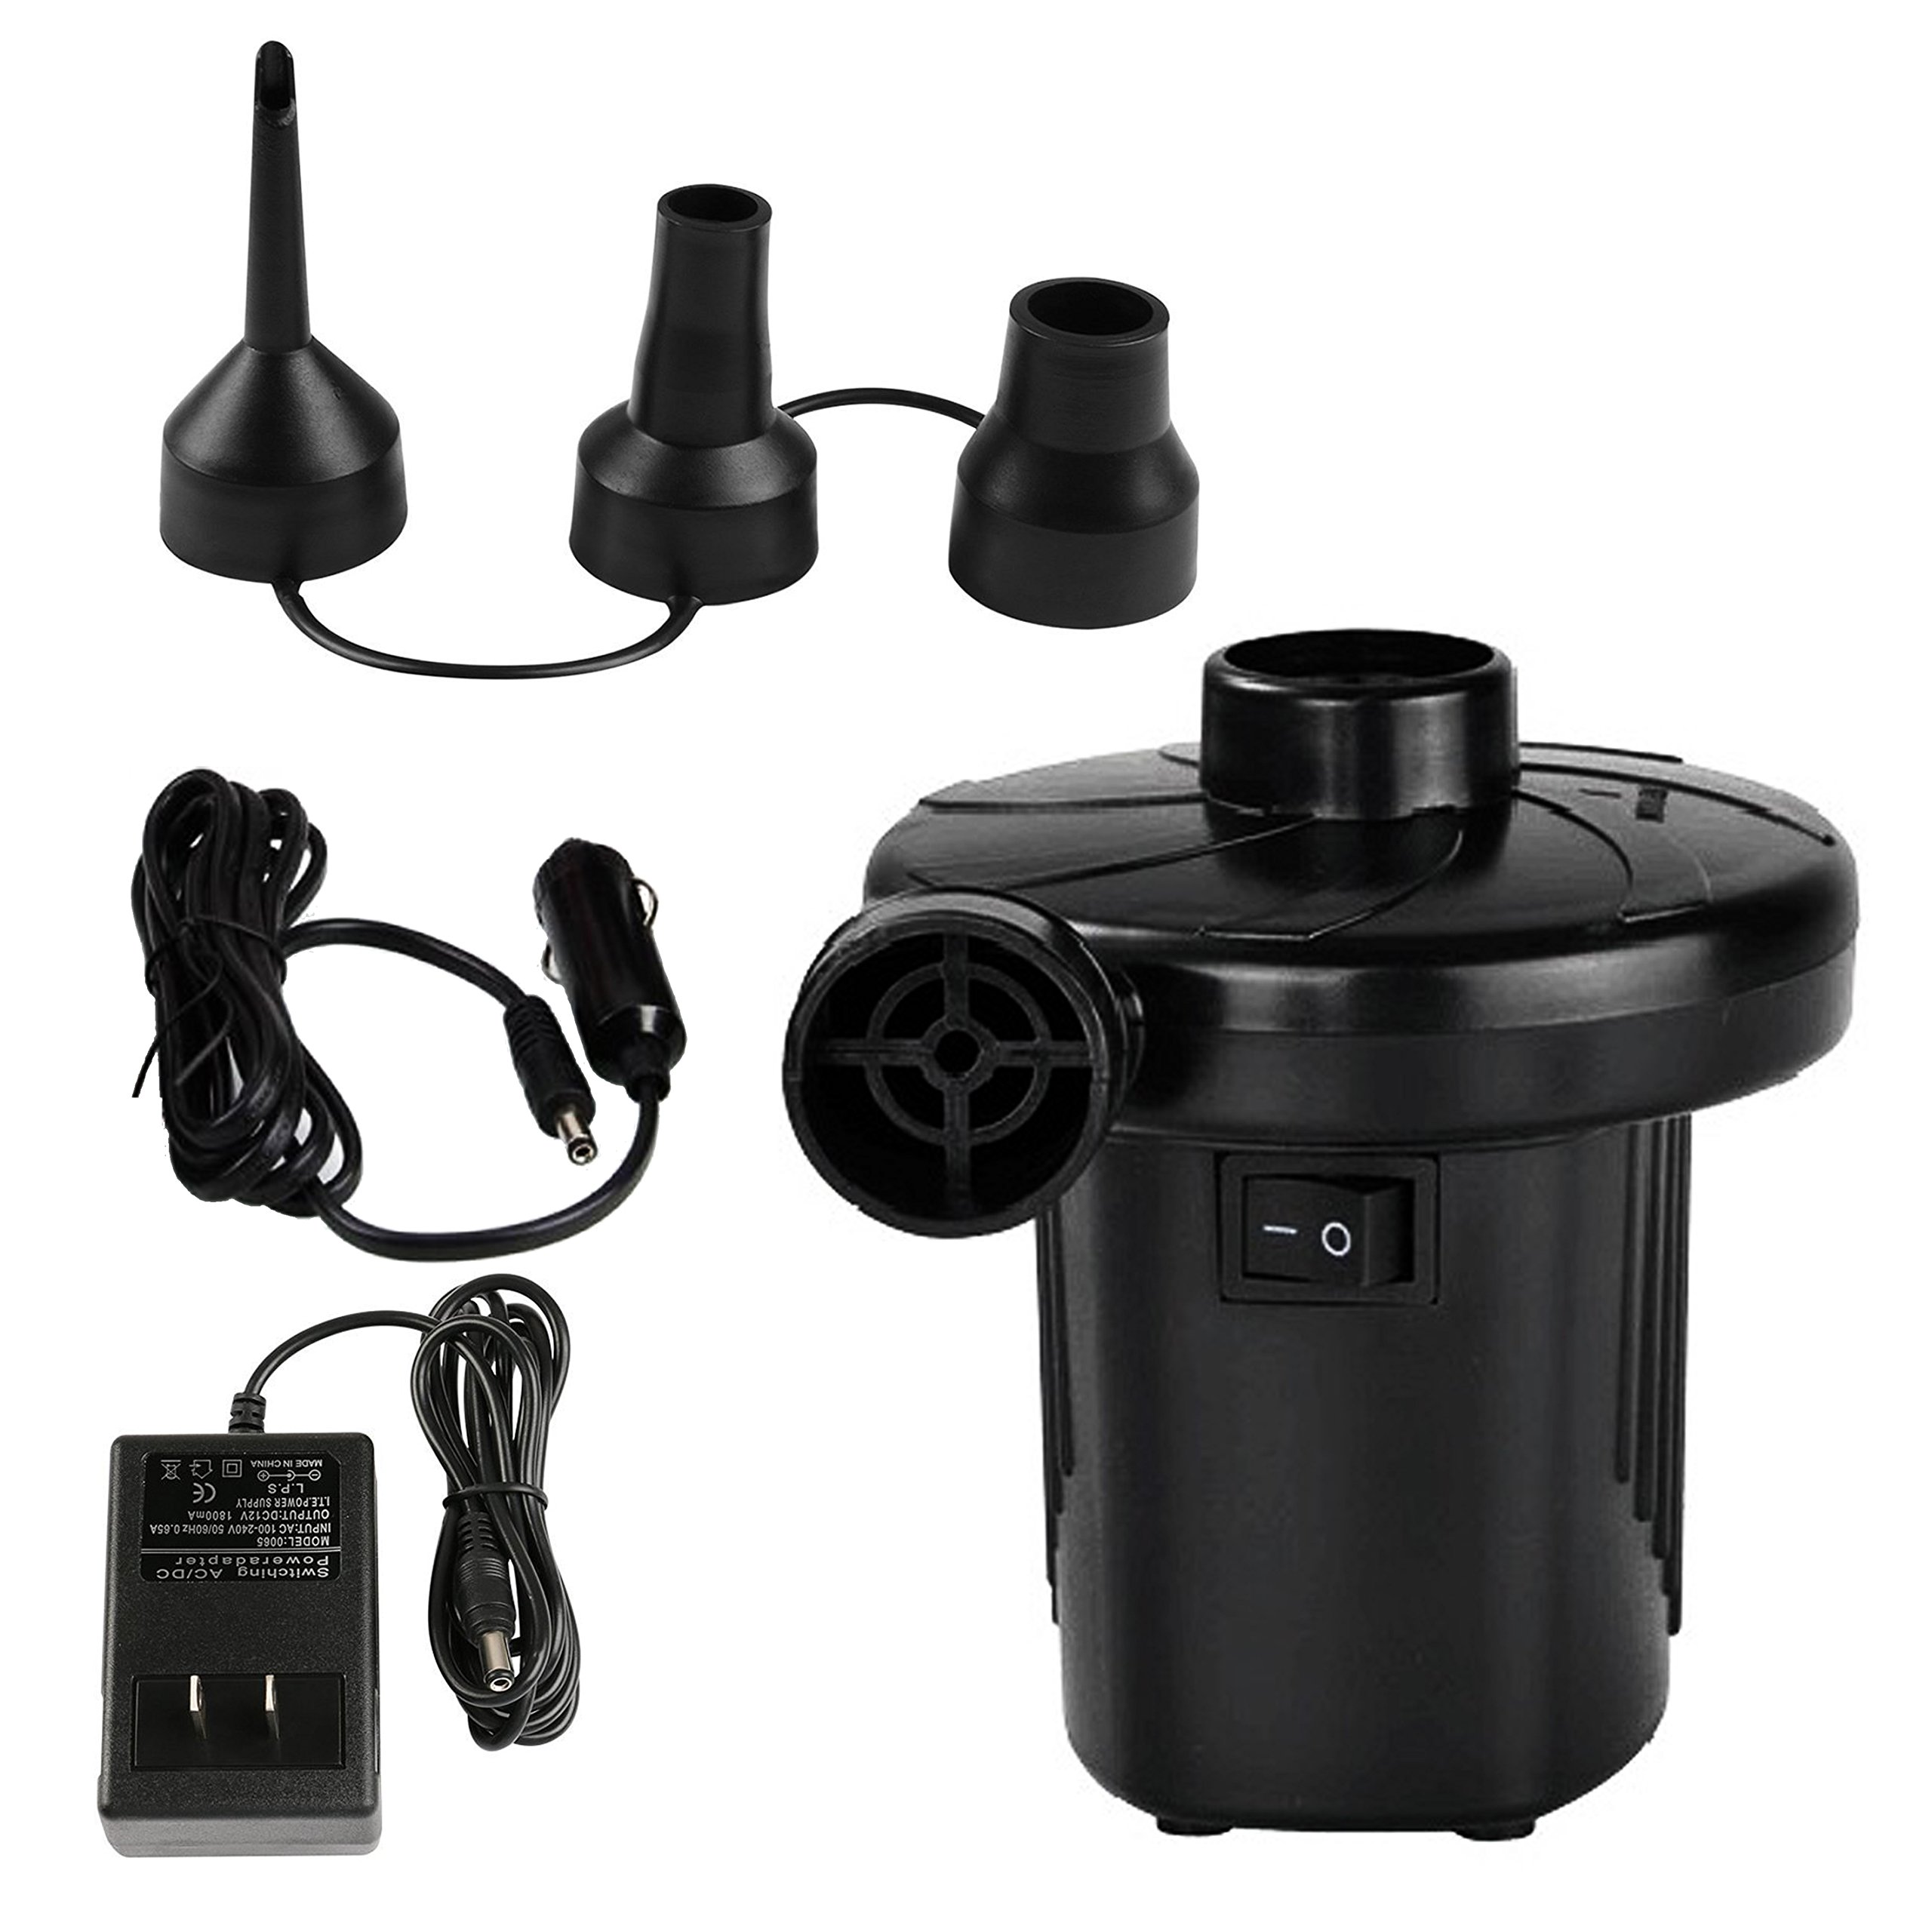 Quick-Fill AC/DC Electric Air Pump, Home/Car(dual-use) DC 12V/AC 110-240V Airflow 200L/min Equipped with 3 Interconnection Nozzles